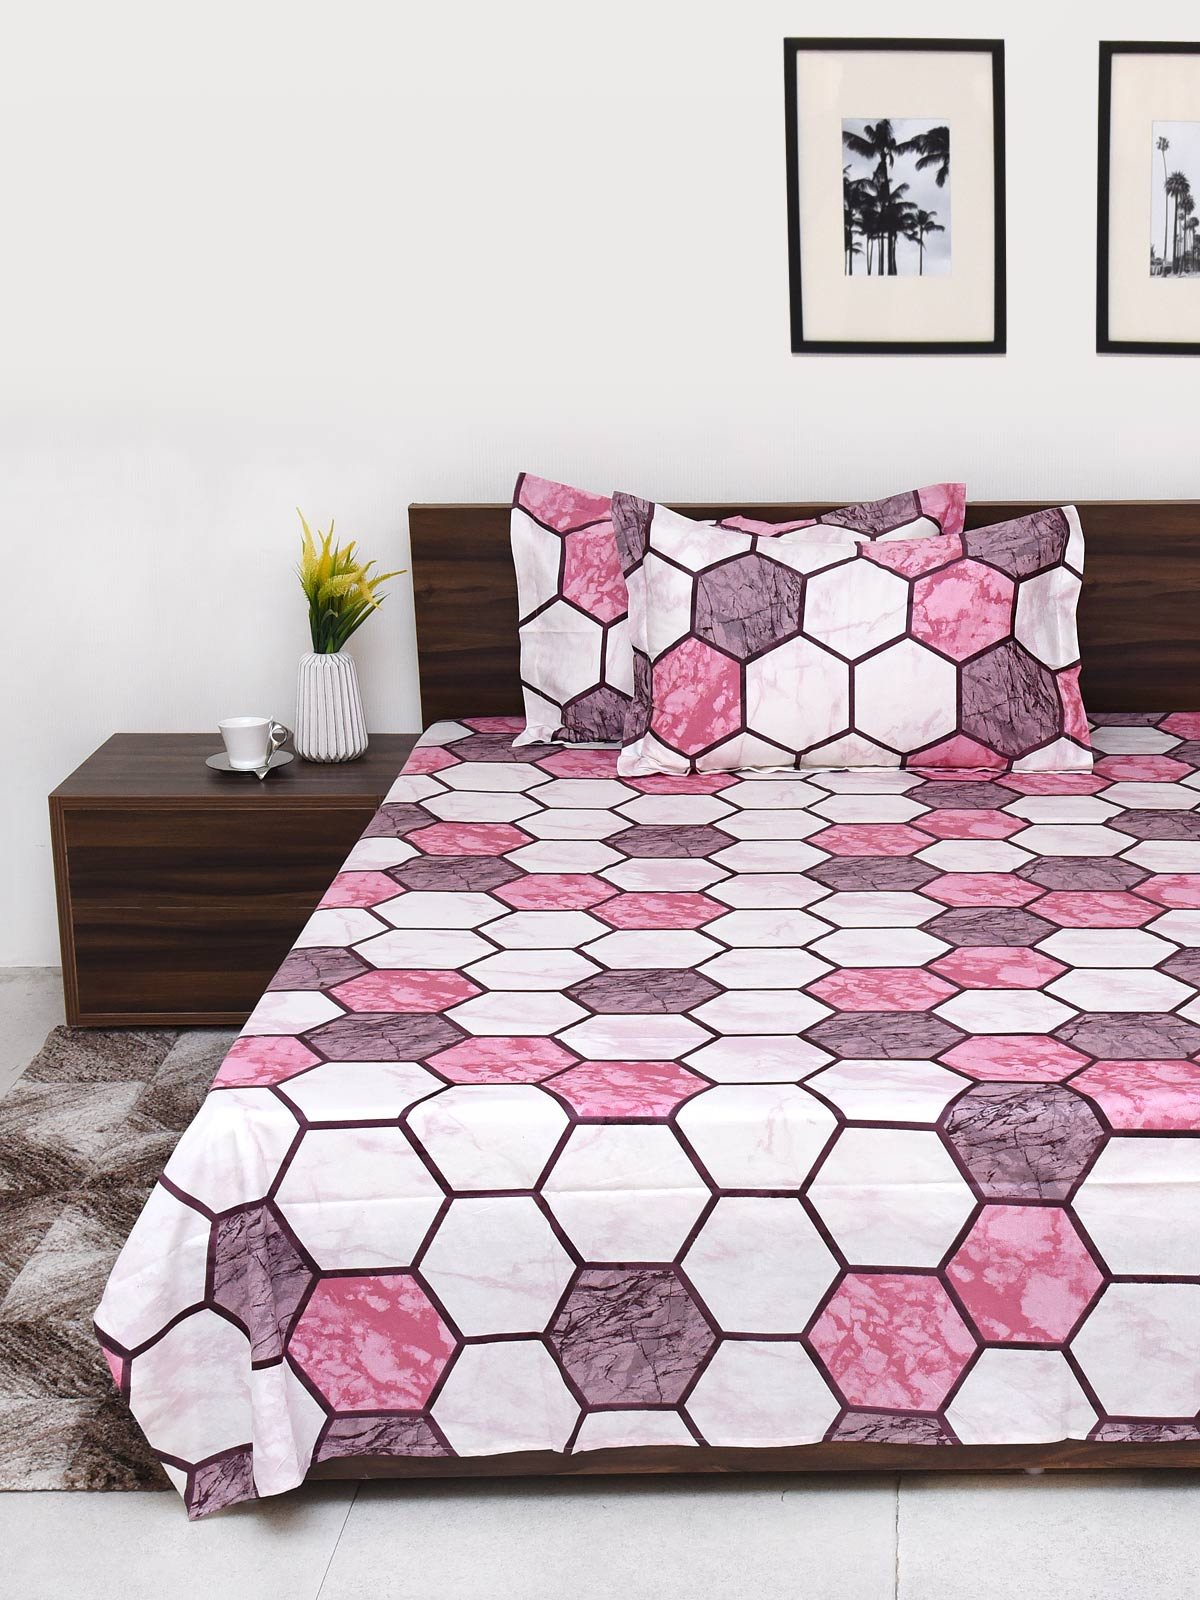 Pink geometrical cotton bed sheet double bed size 90x100 inches - Brown, white